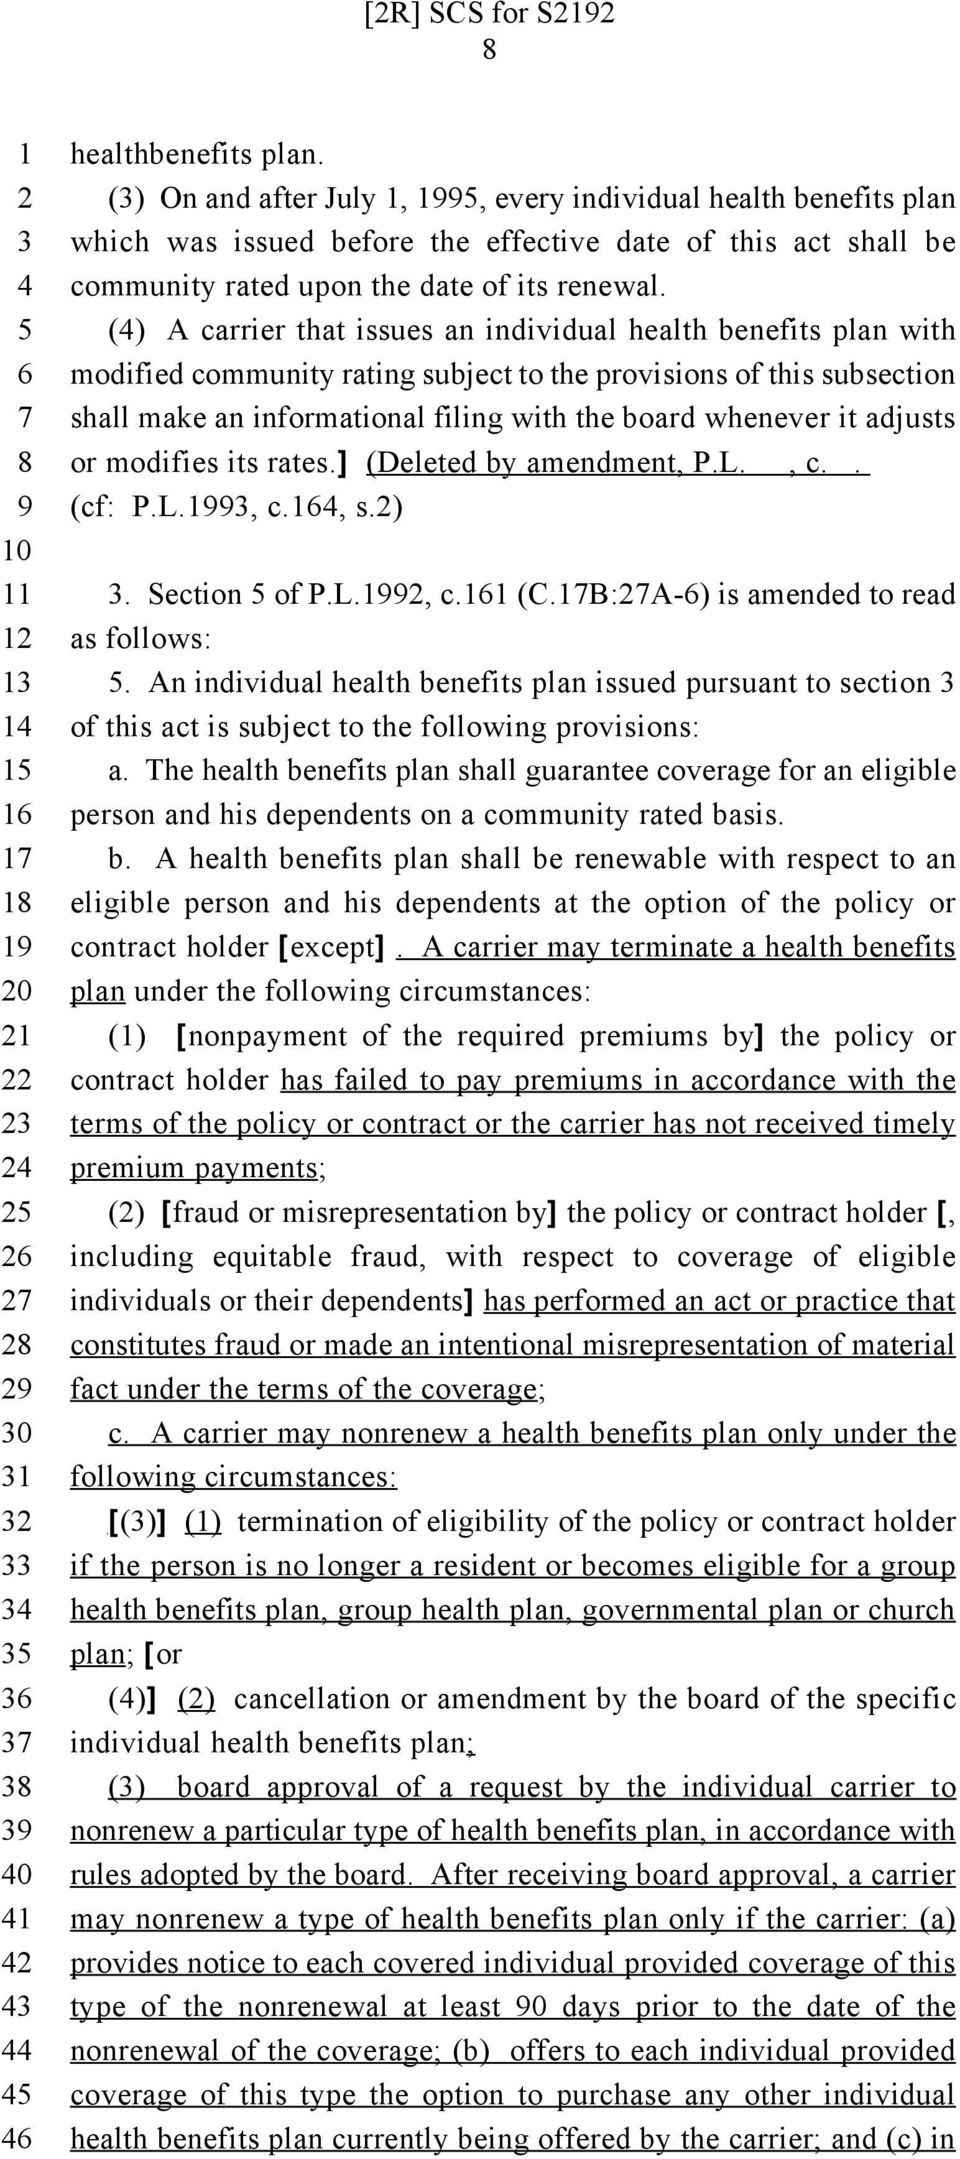 () A carrier that issues an individual health benefits plan with modified community rating subject to the provisions of this subsection shall make an informational filing with the board whenever it